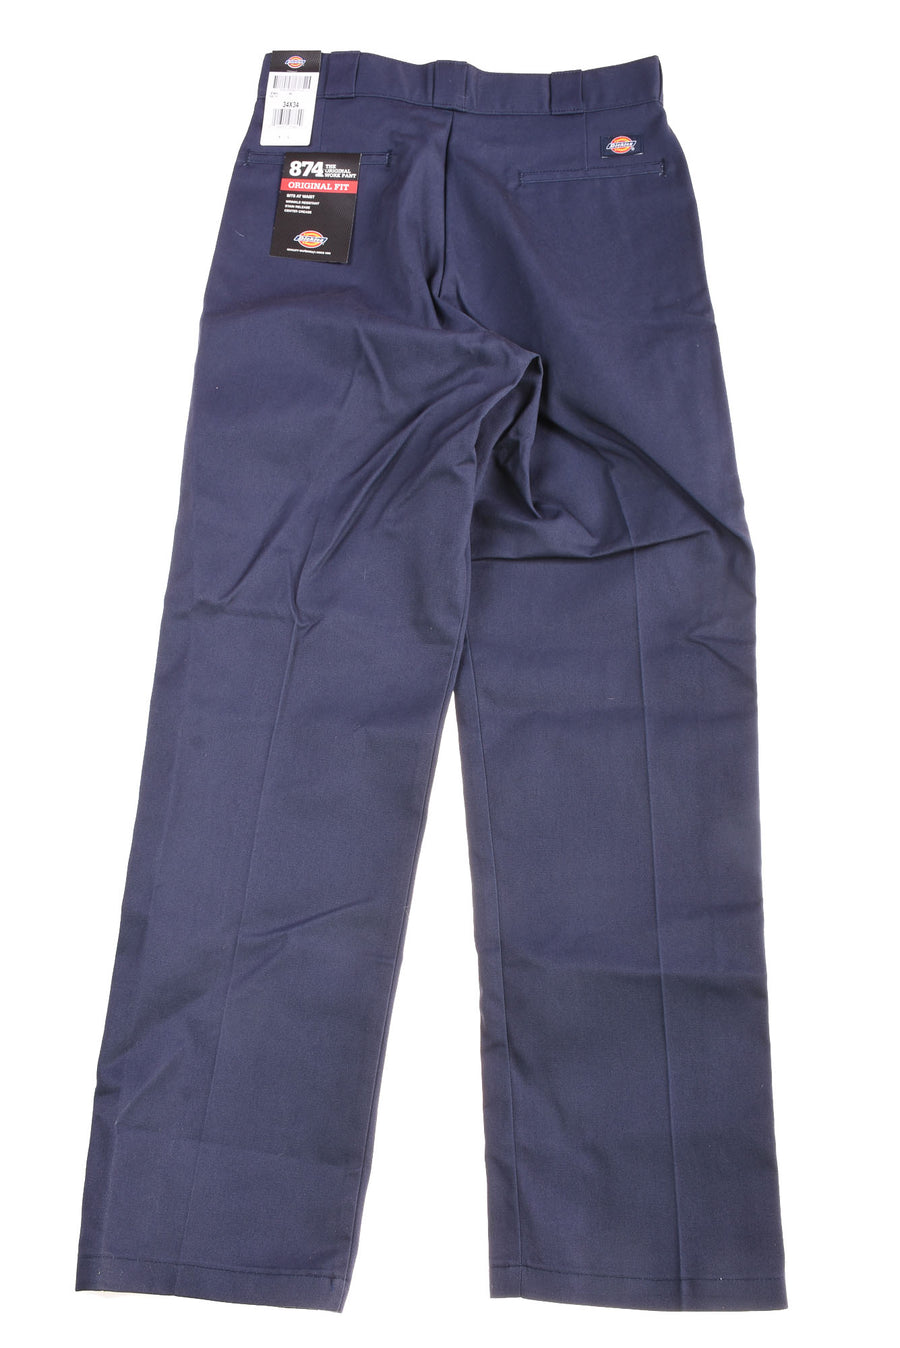 NEW Dickies Men's Pants 34x34 Blue